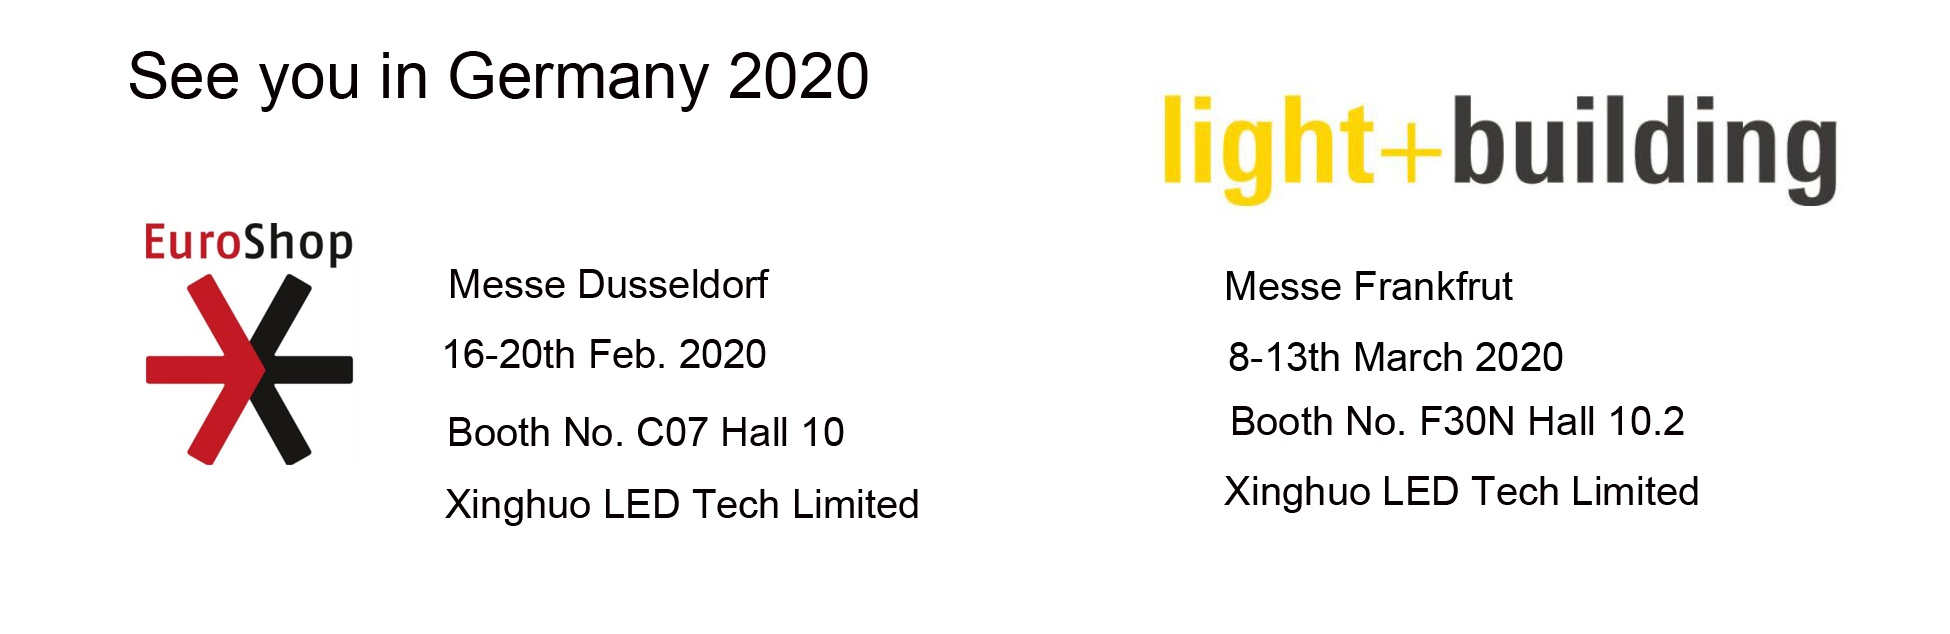 see you in Germany,  Euroshop 2020 Messe Dusseldorf Light+Building 2020 Messe Frankfrut